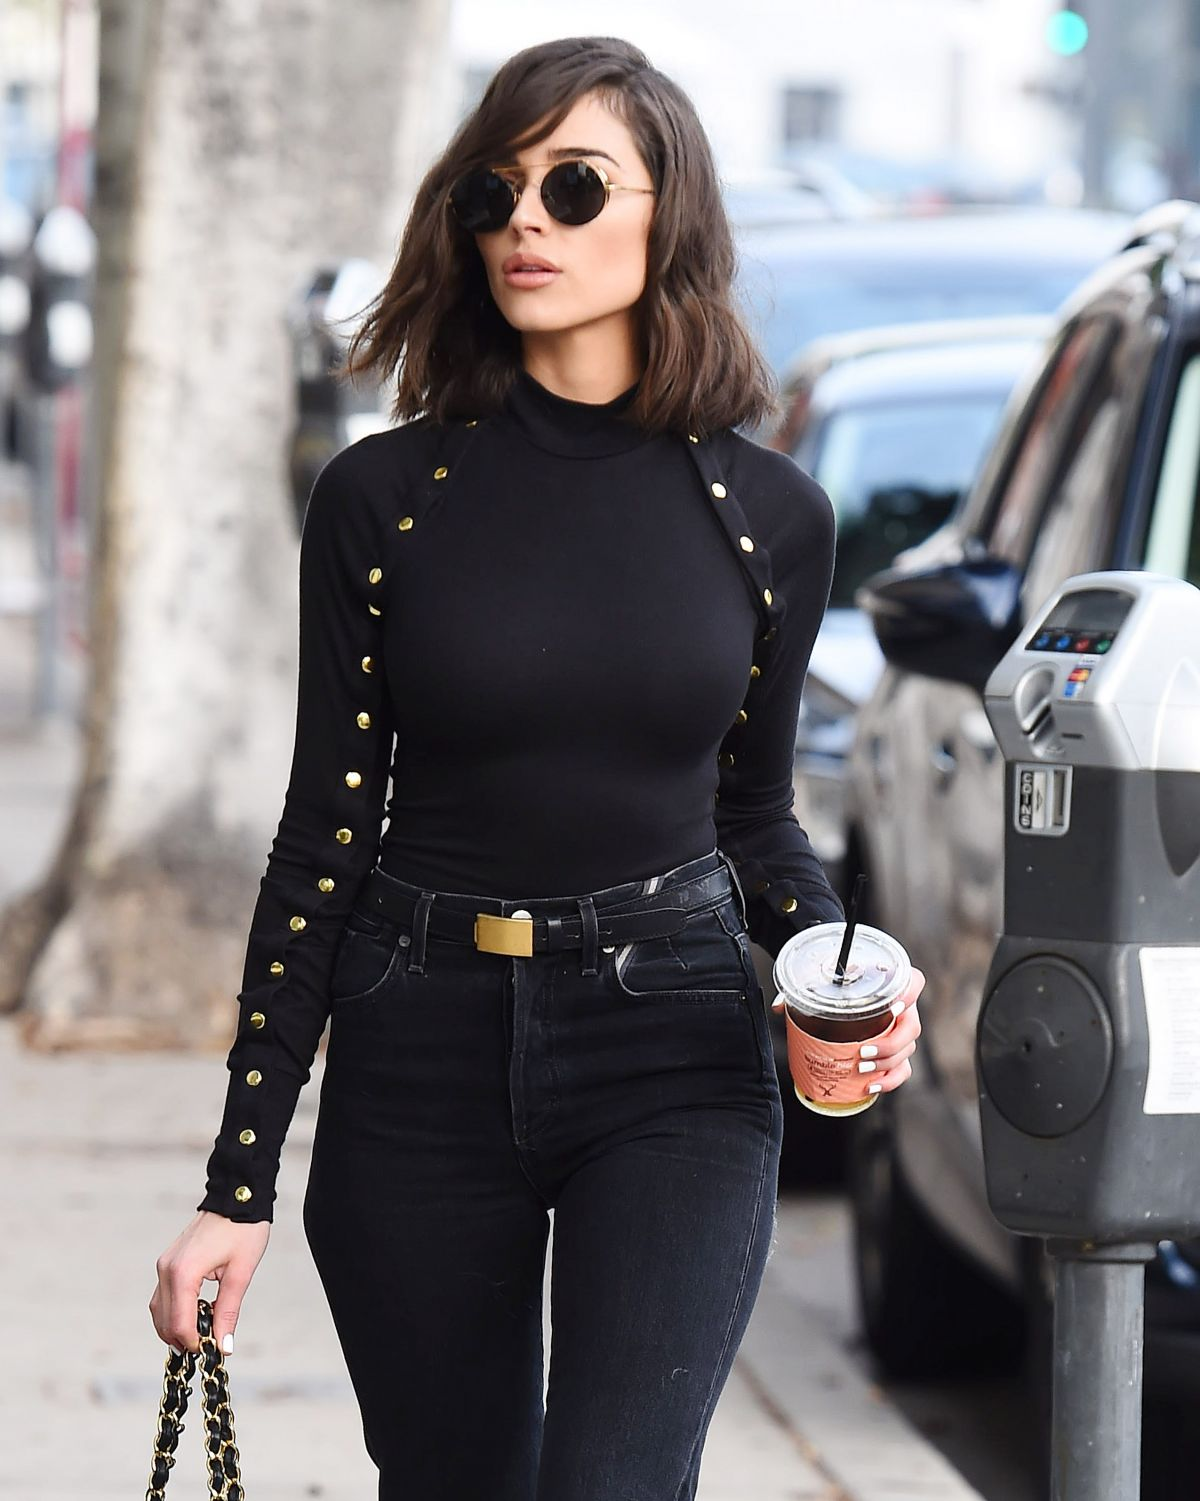 OLIVIA CULPO Out and About in Los Angeles 01/16/2018 – HawtCelebs